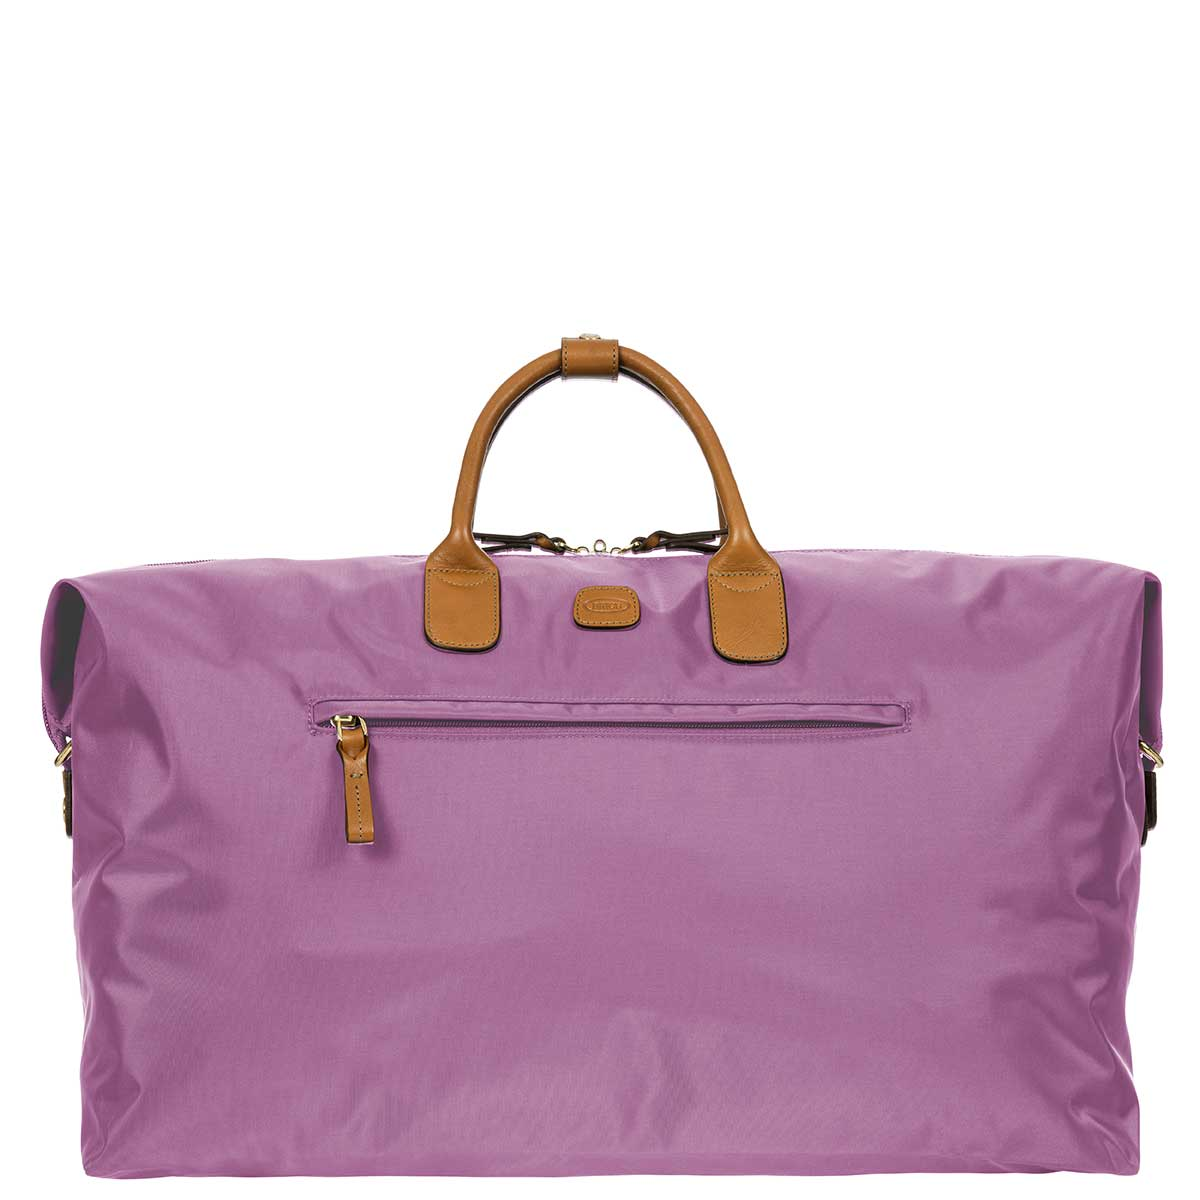 "X-Bag 22"" Deluxe Duffle Bag - Wisteria 